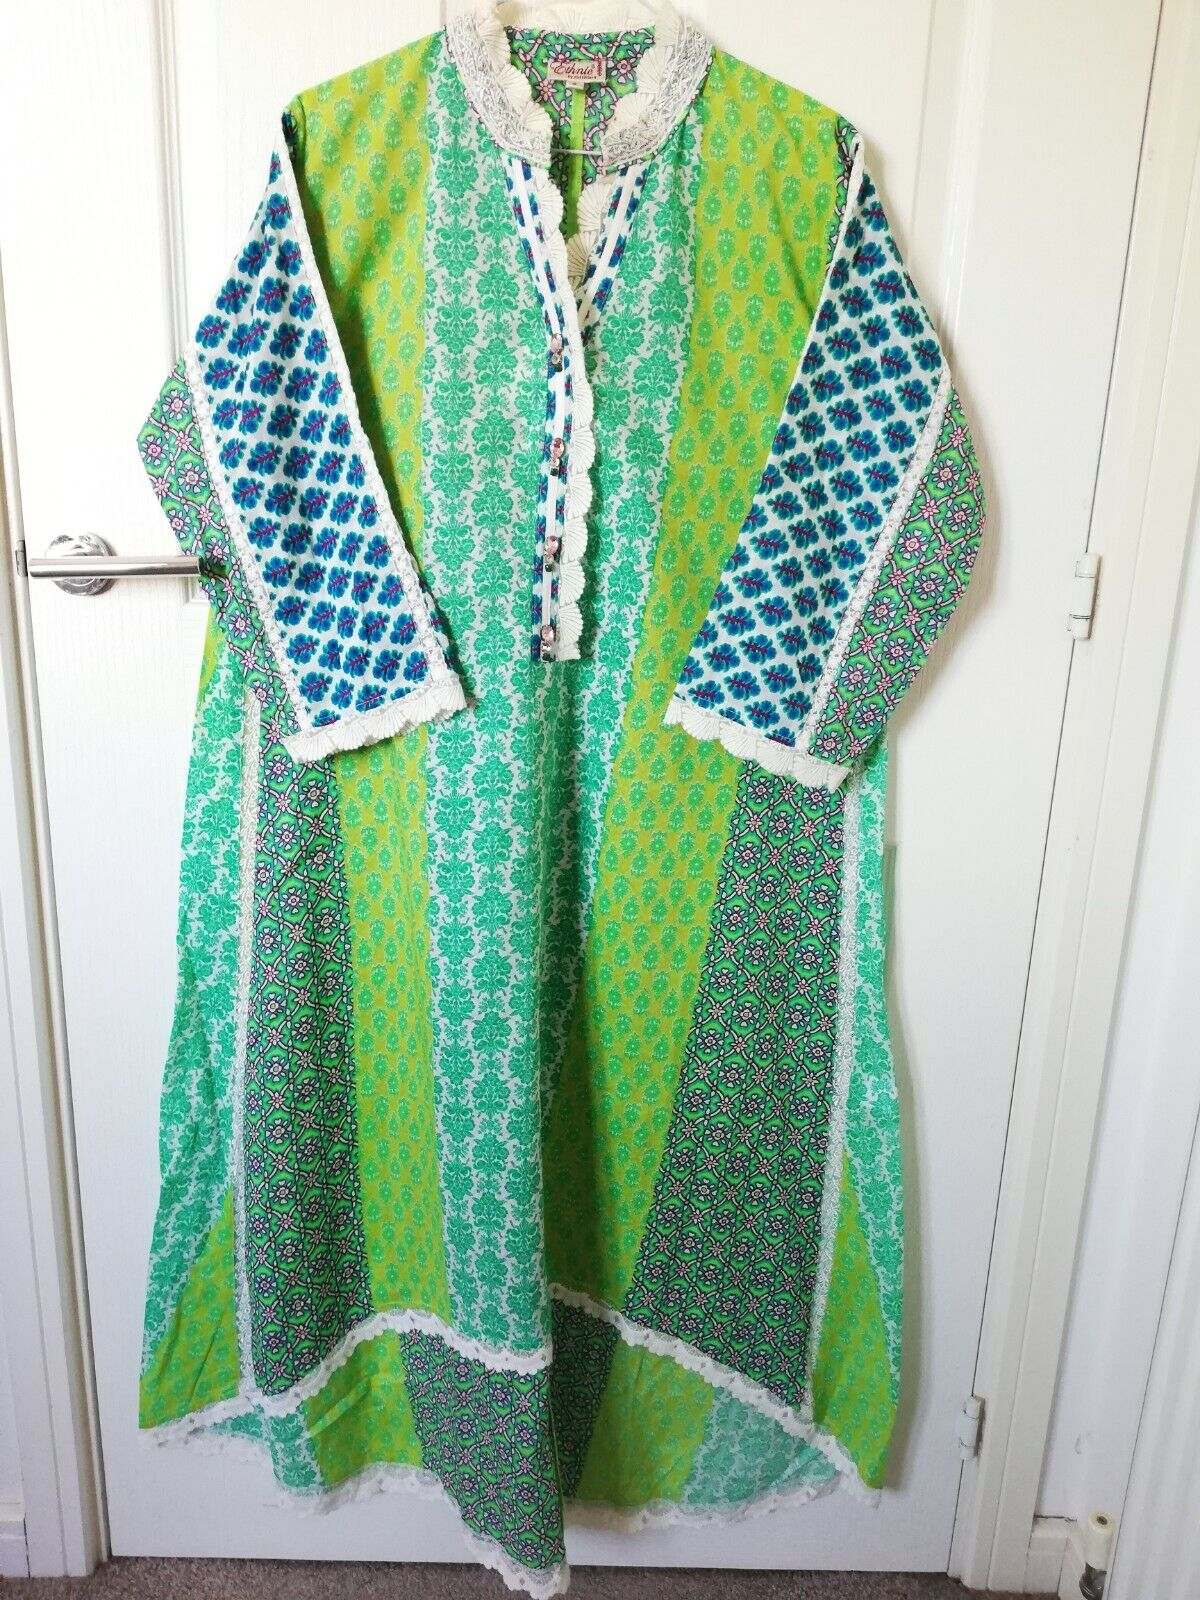 Maria b original stitched. Agha Noor. Limelight. Sapphire. Ethnic long shirt.